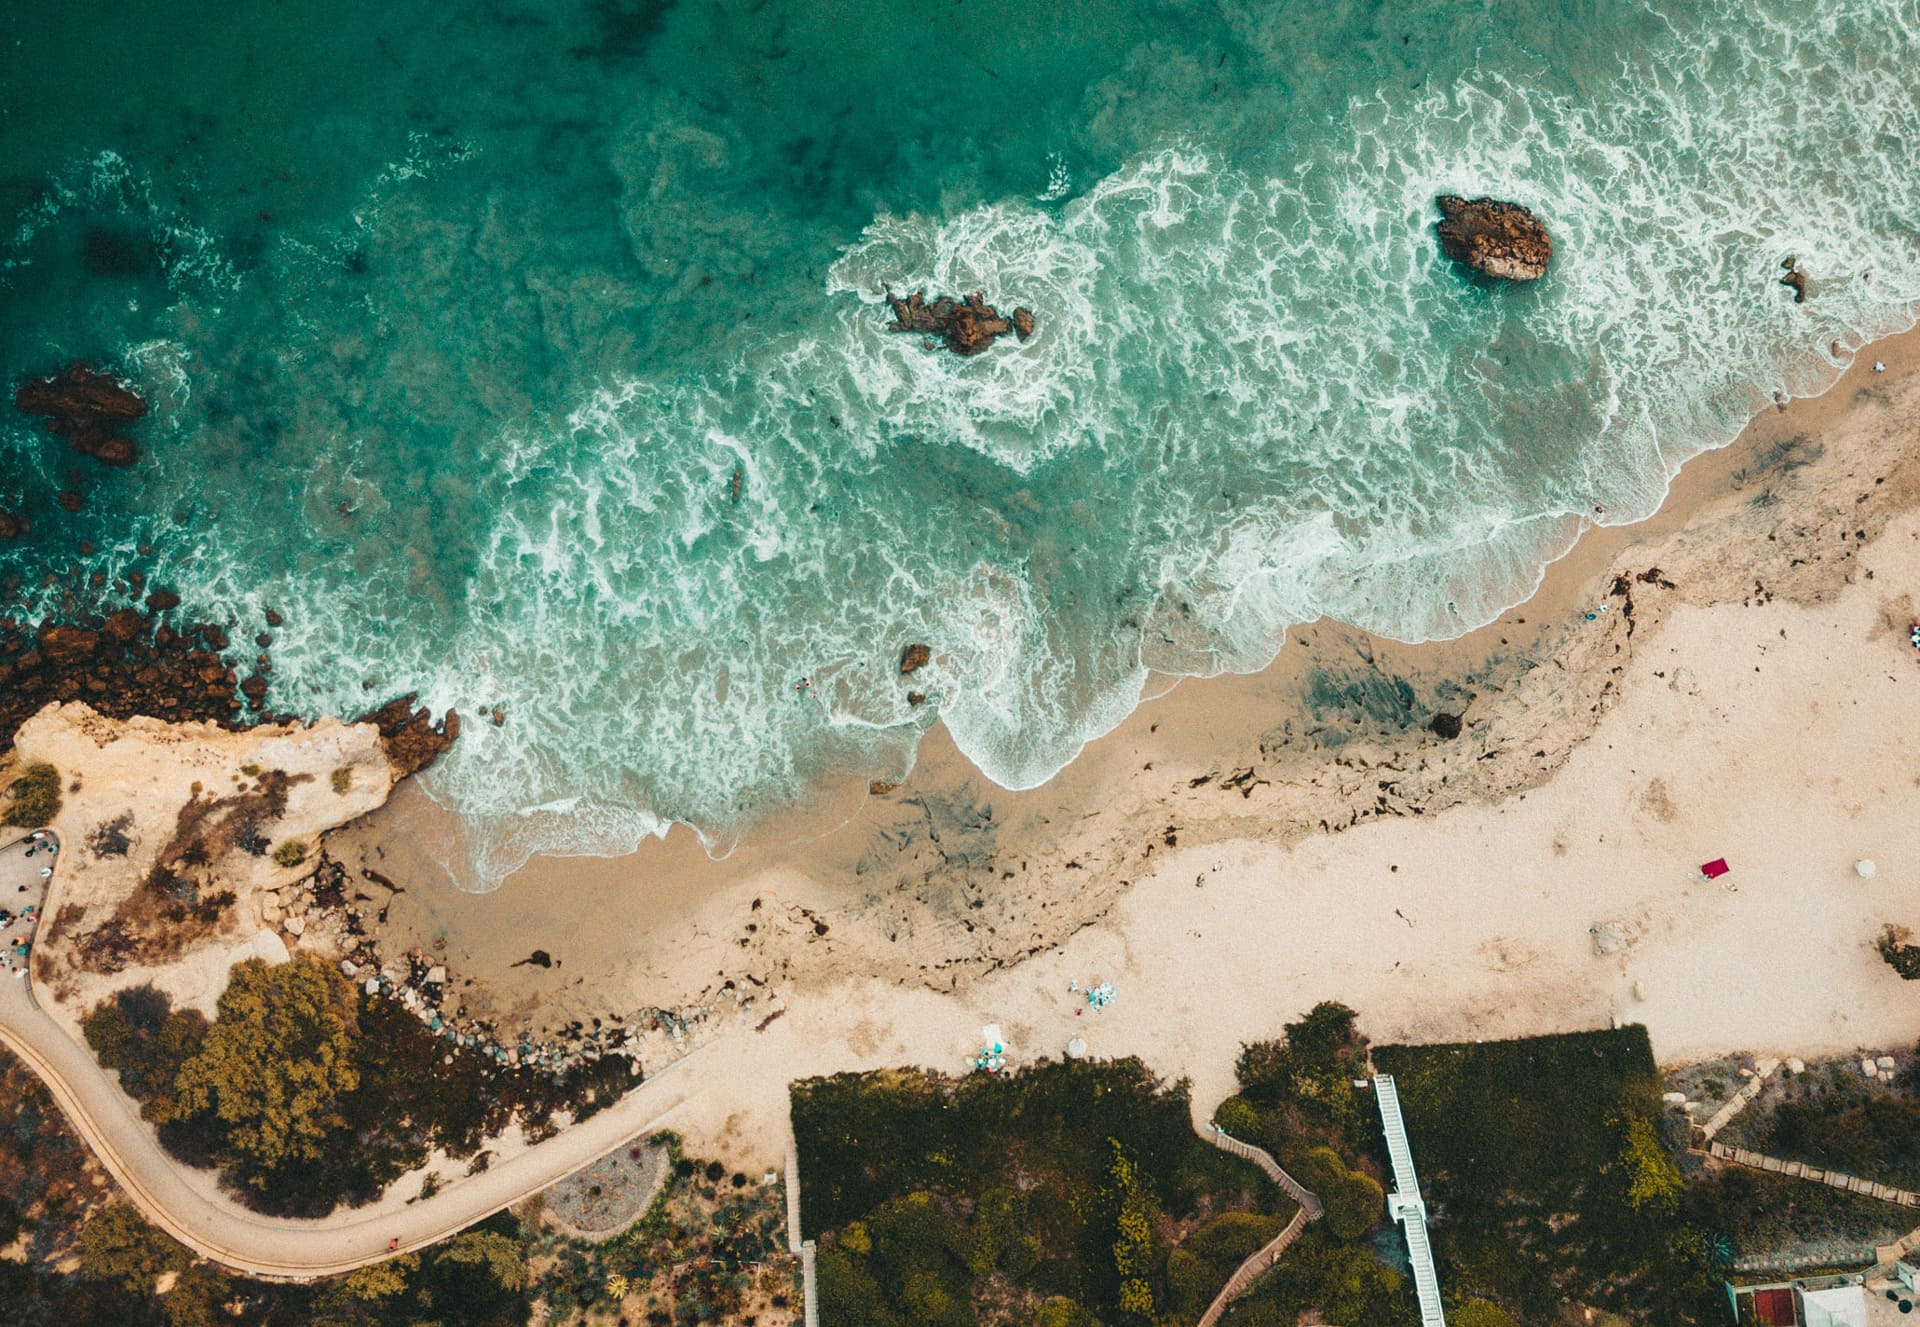 Areal shot of a secluded sandy beach with waves crashing.